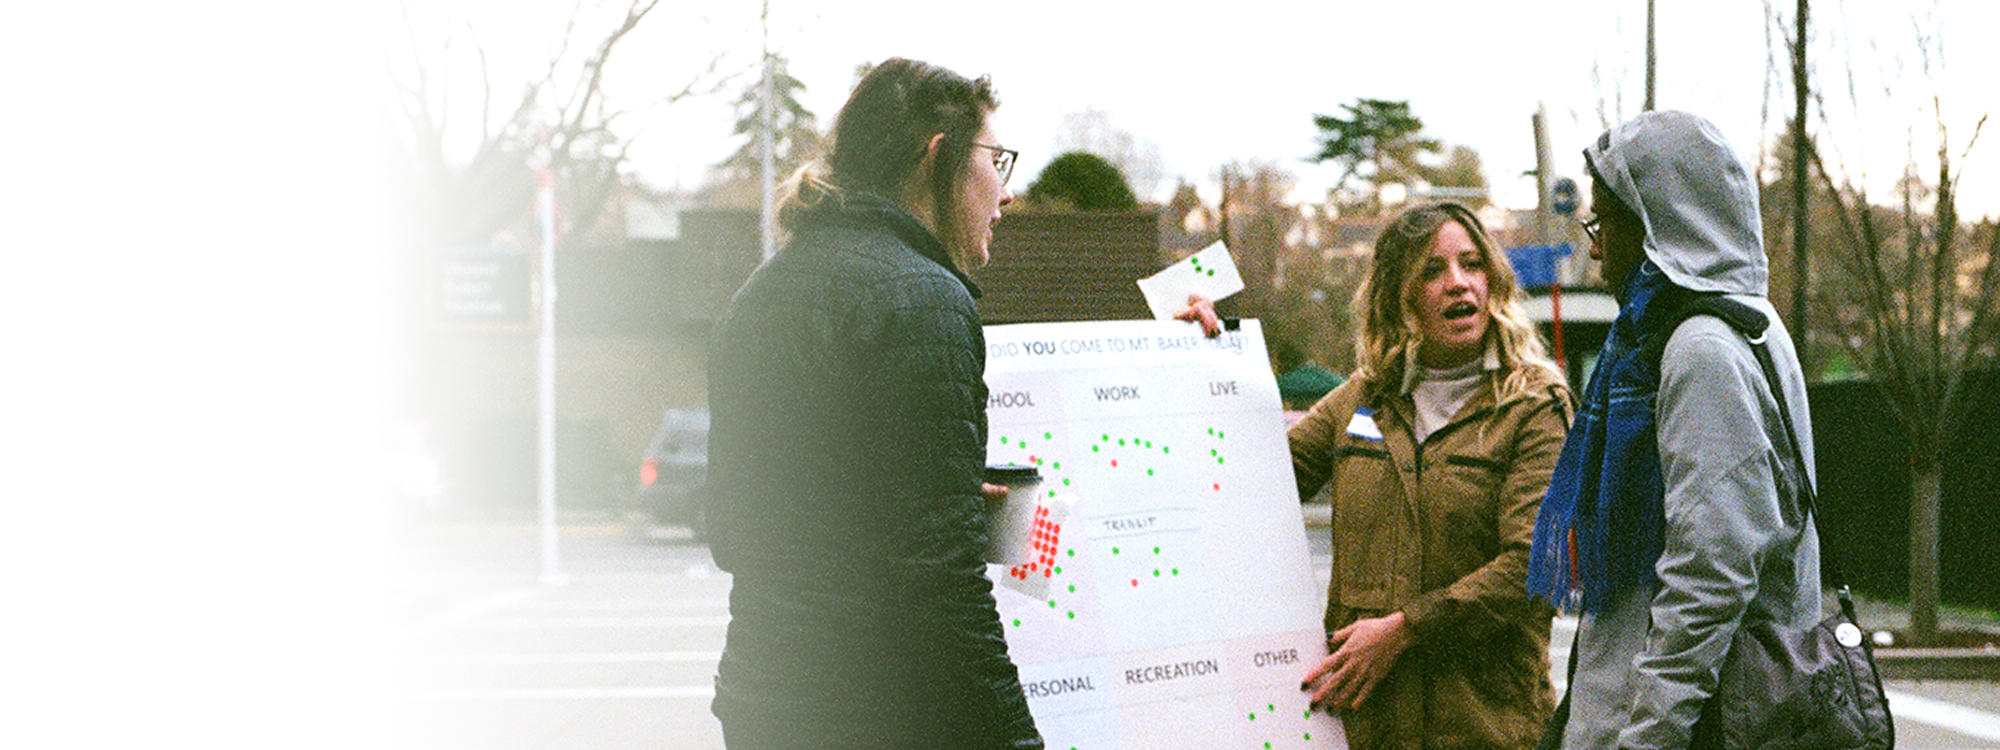 Students engaging with people at the Mt Baker Transit Station